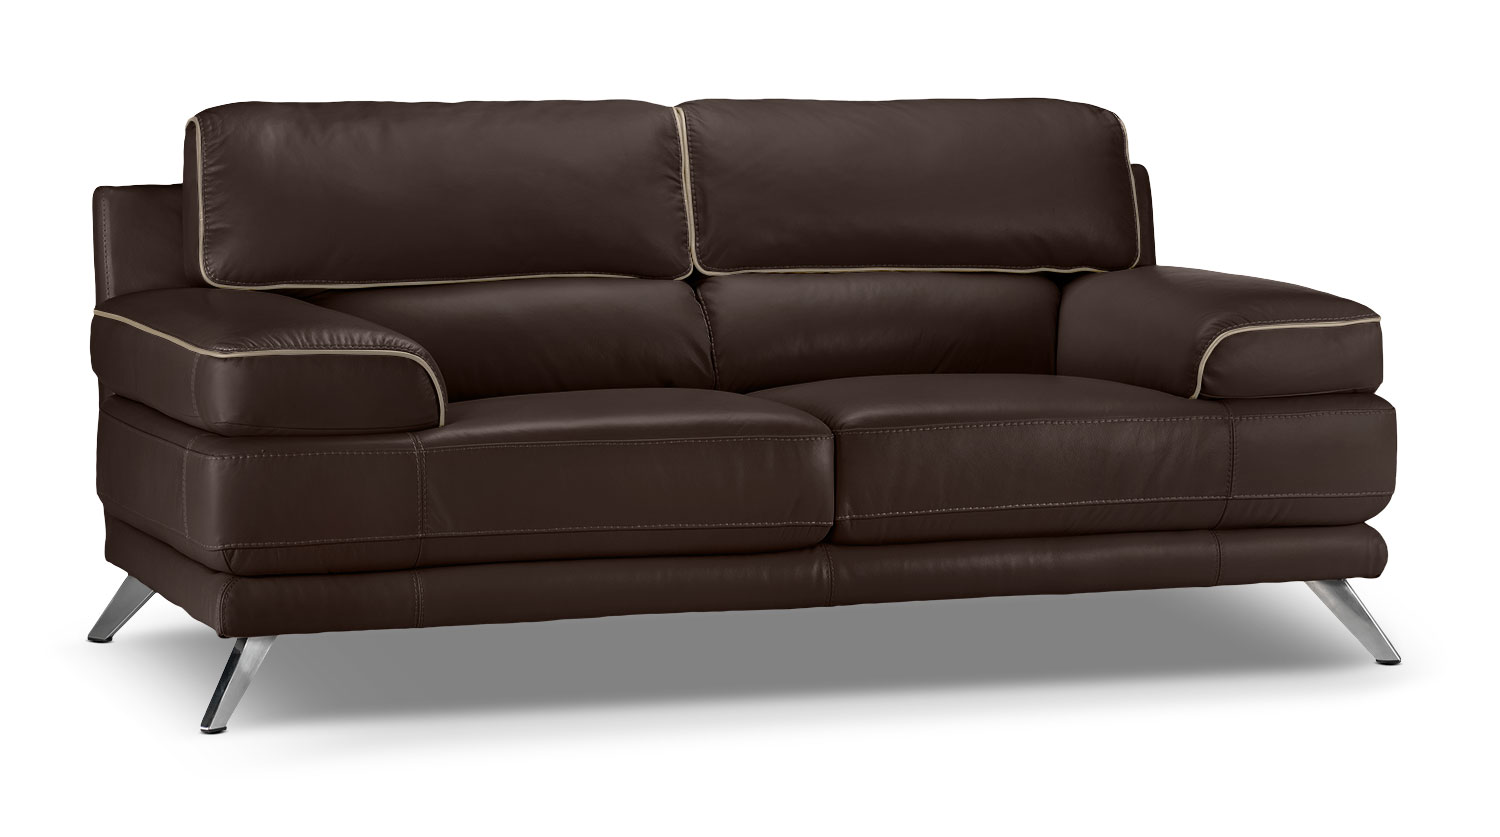 Living Room Furniture - Sutton Loveseat - Walnut Brown